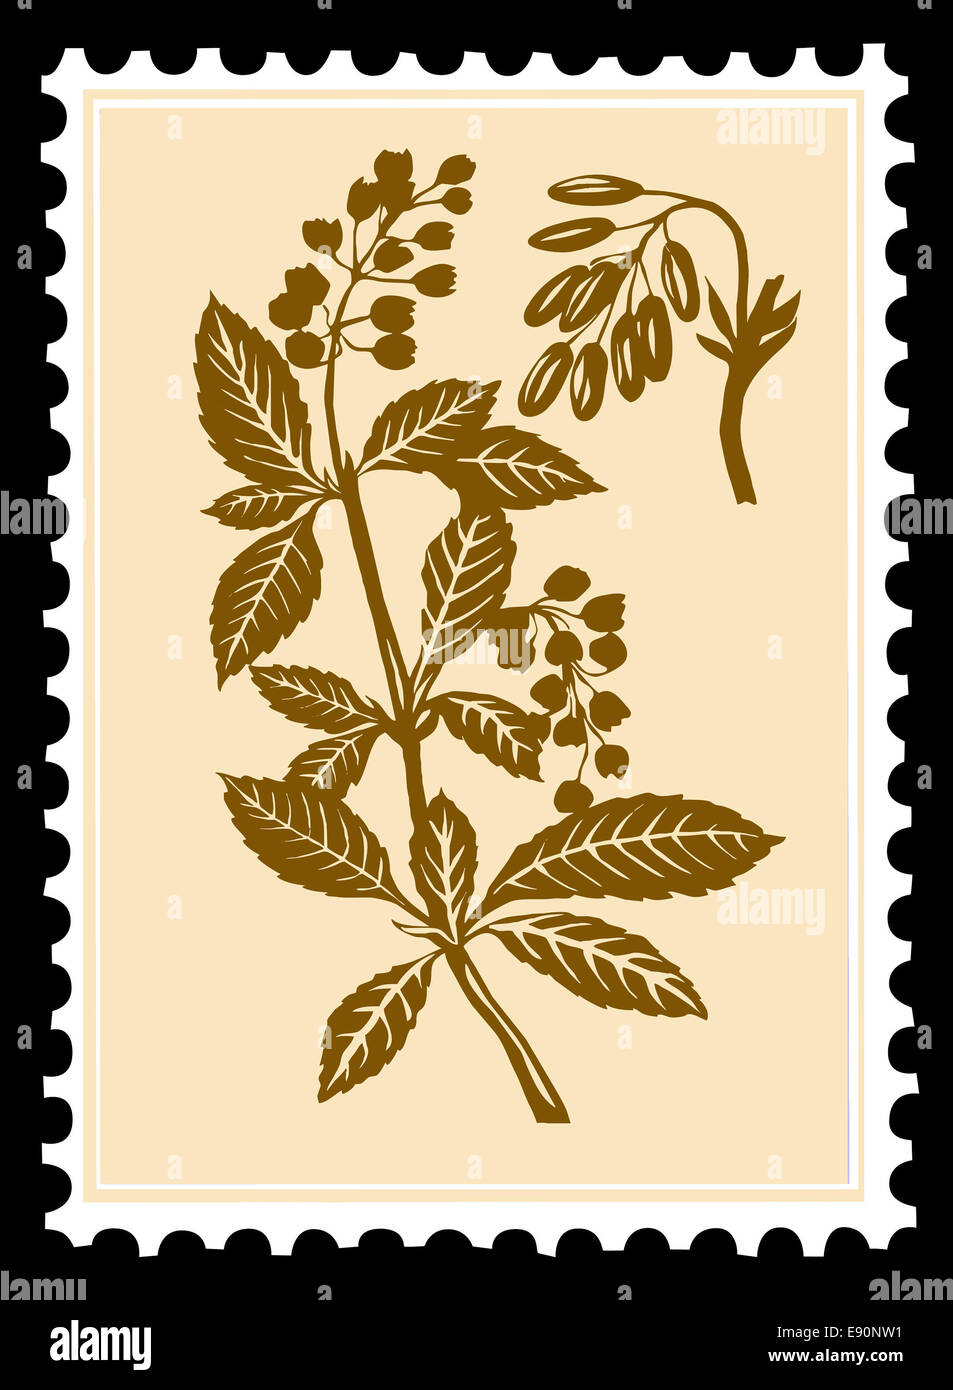 postage stamps on black background Stock Photo